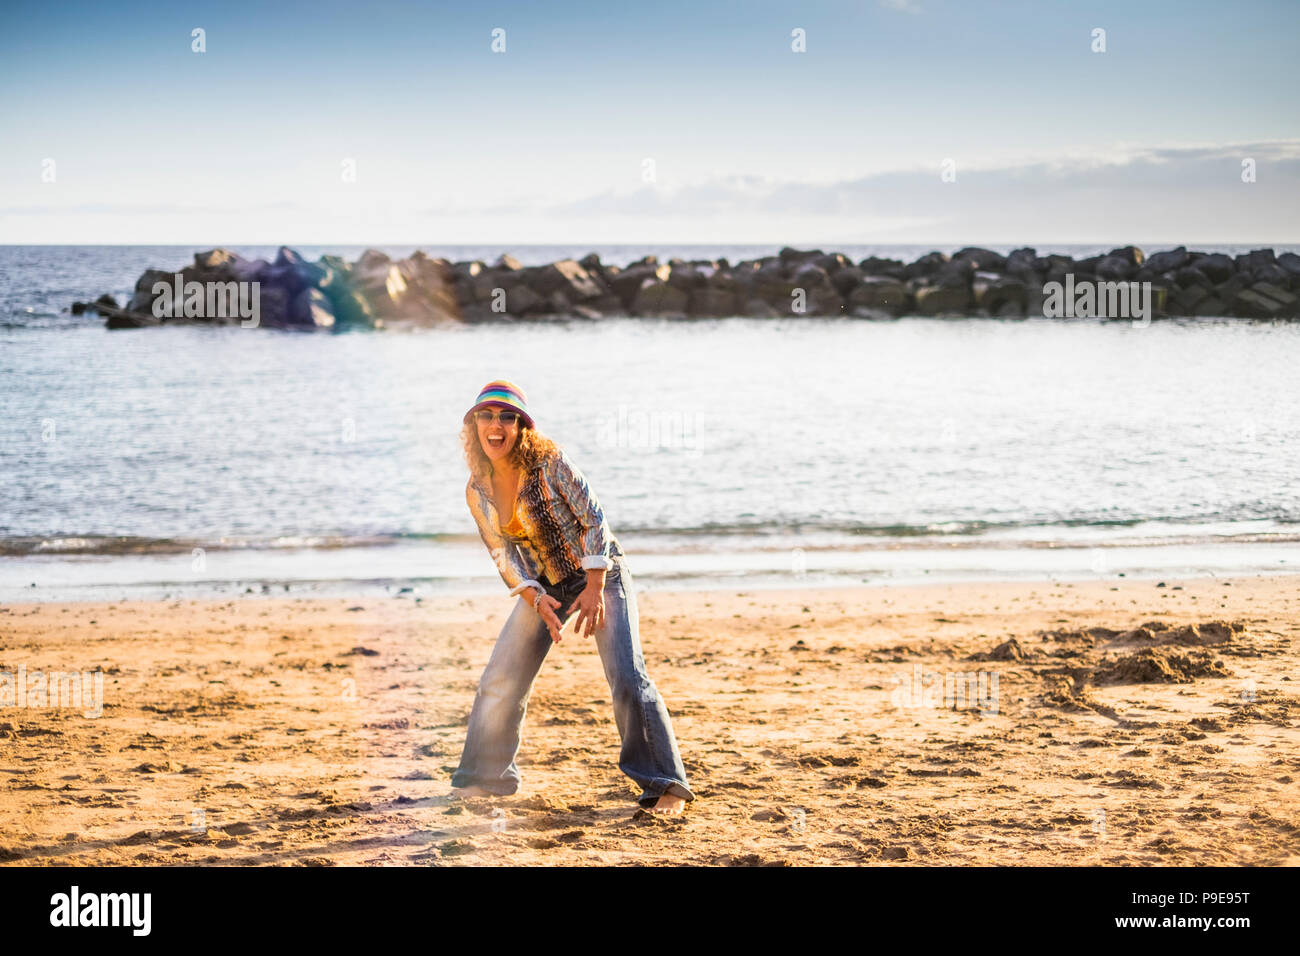 happy freedom crazy middle age woman jump on the beach for happiness and joyfun life outdoor vacation summer ocean and beach concept. fashion hippy cl - Stock Image